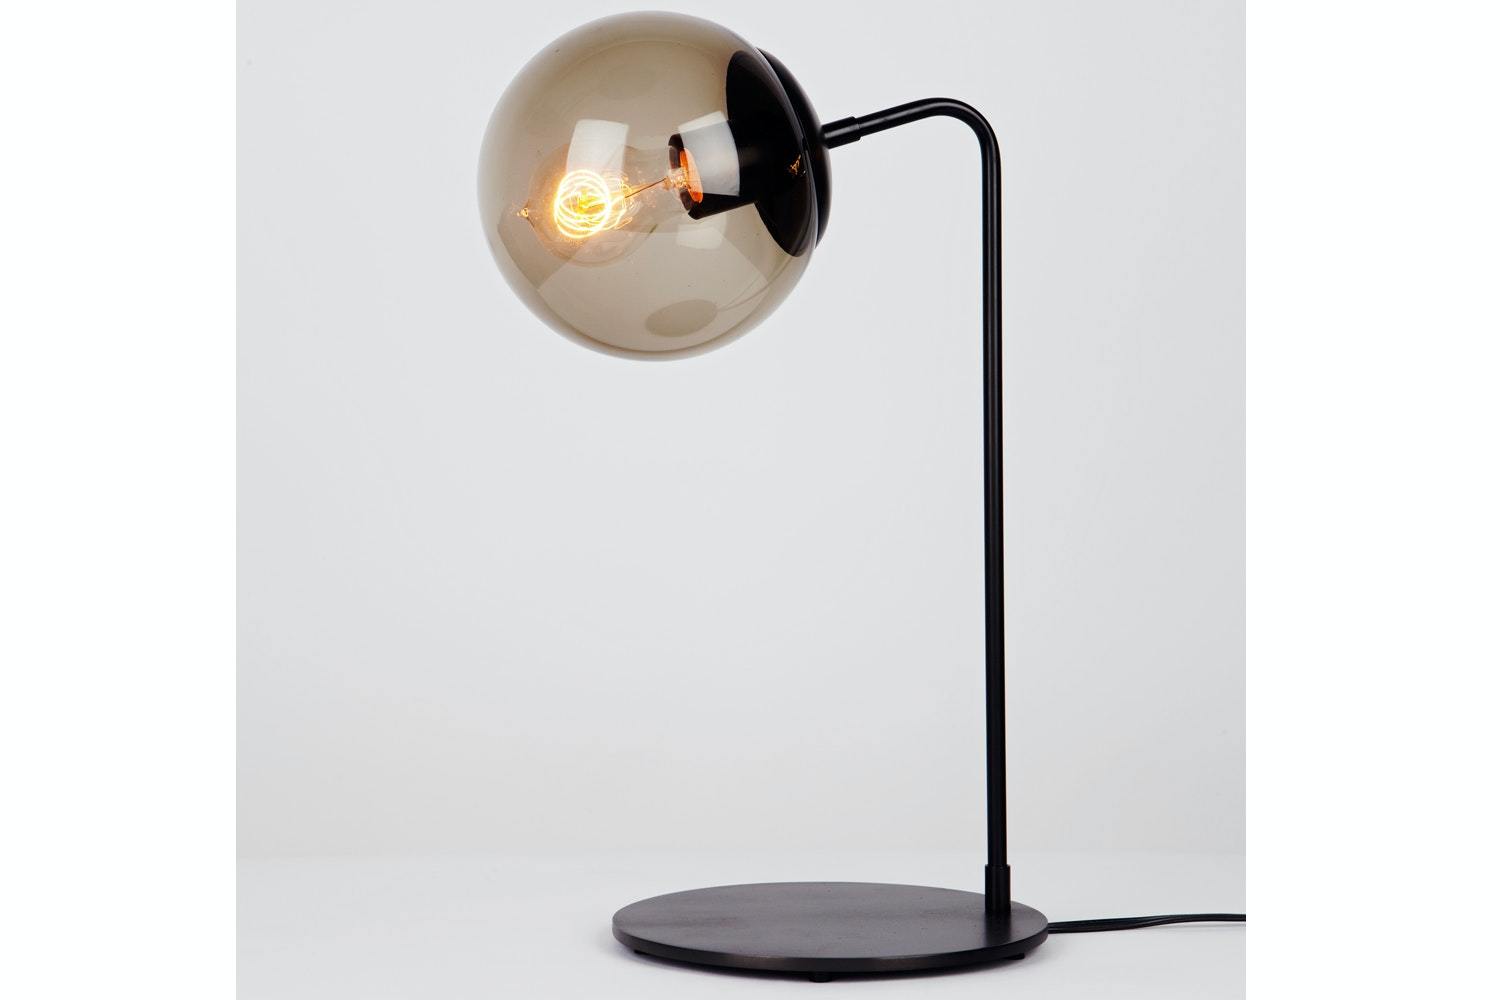 Modo Desk Lamp by Jason Miller for Roll & Hill